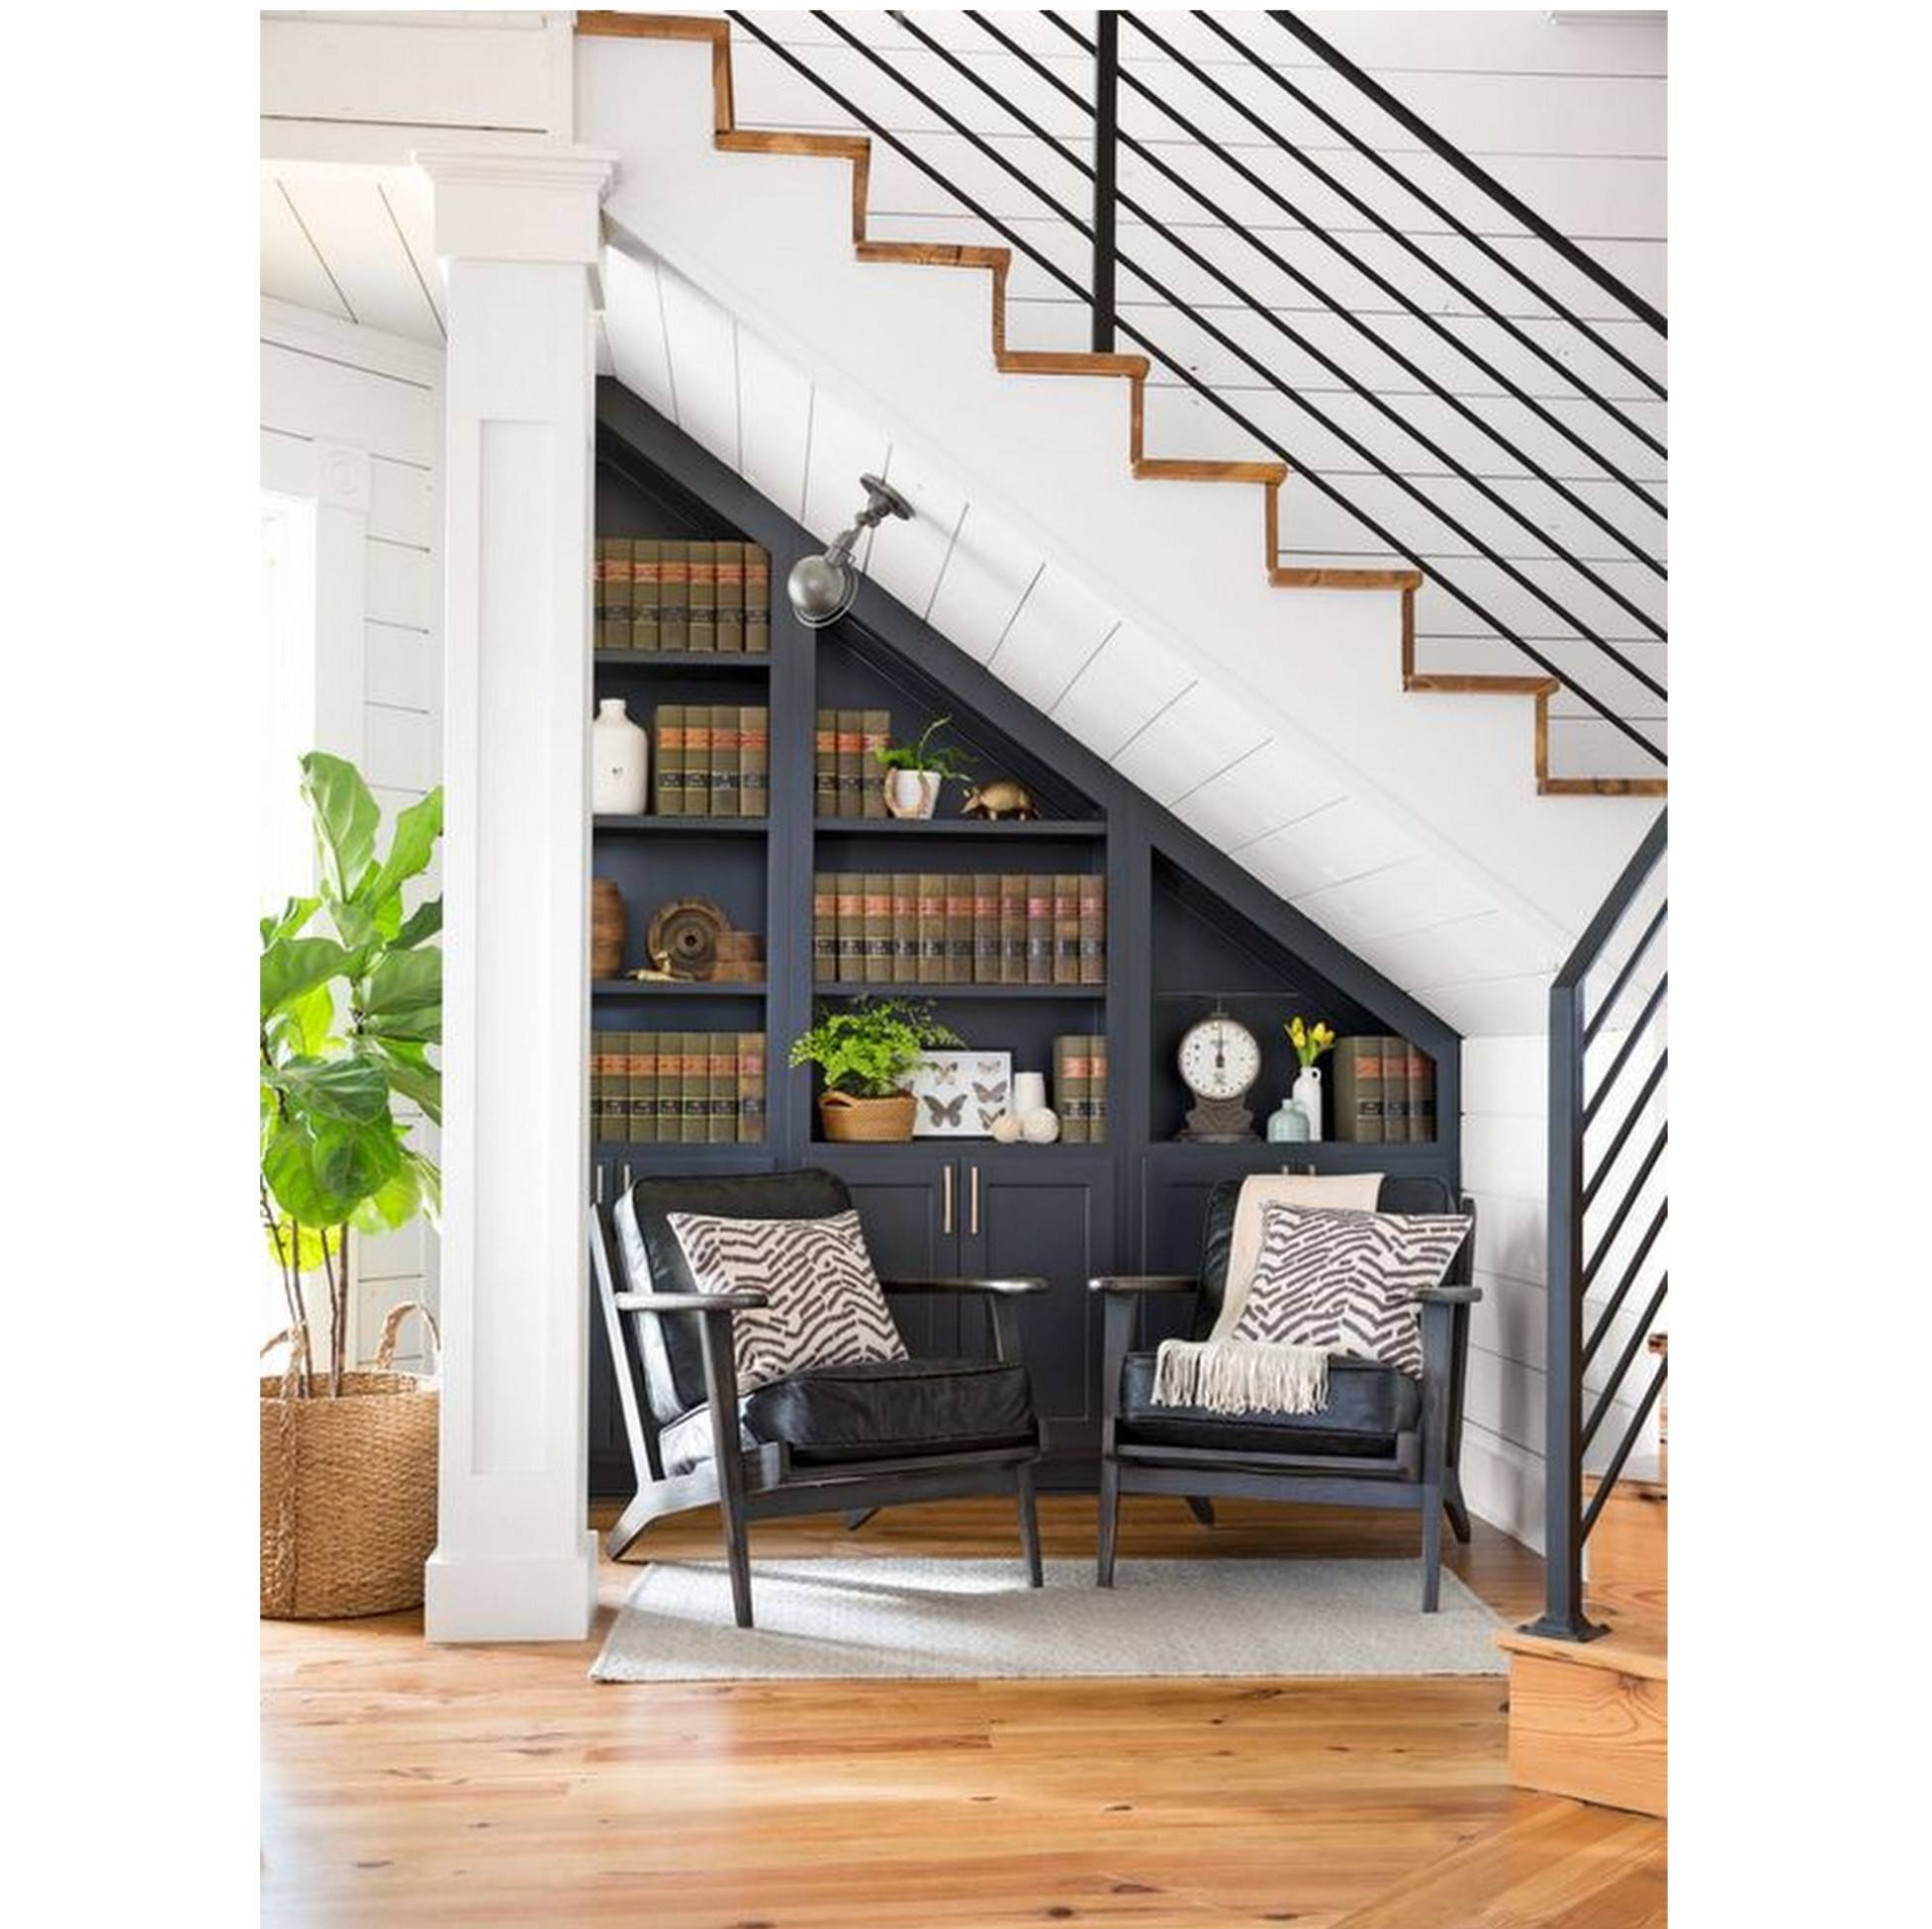 Under the stair reading nook.